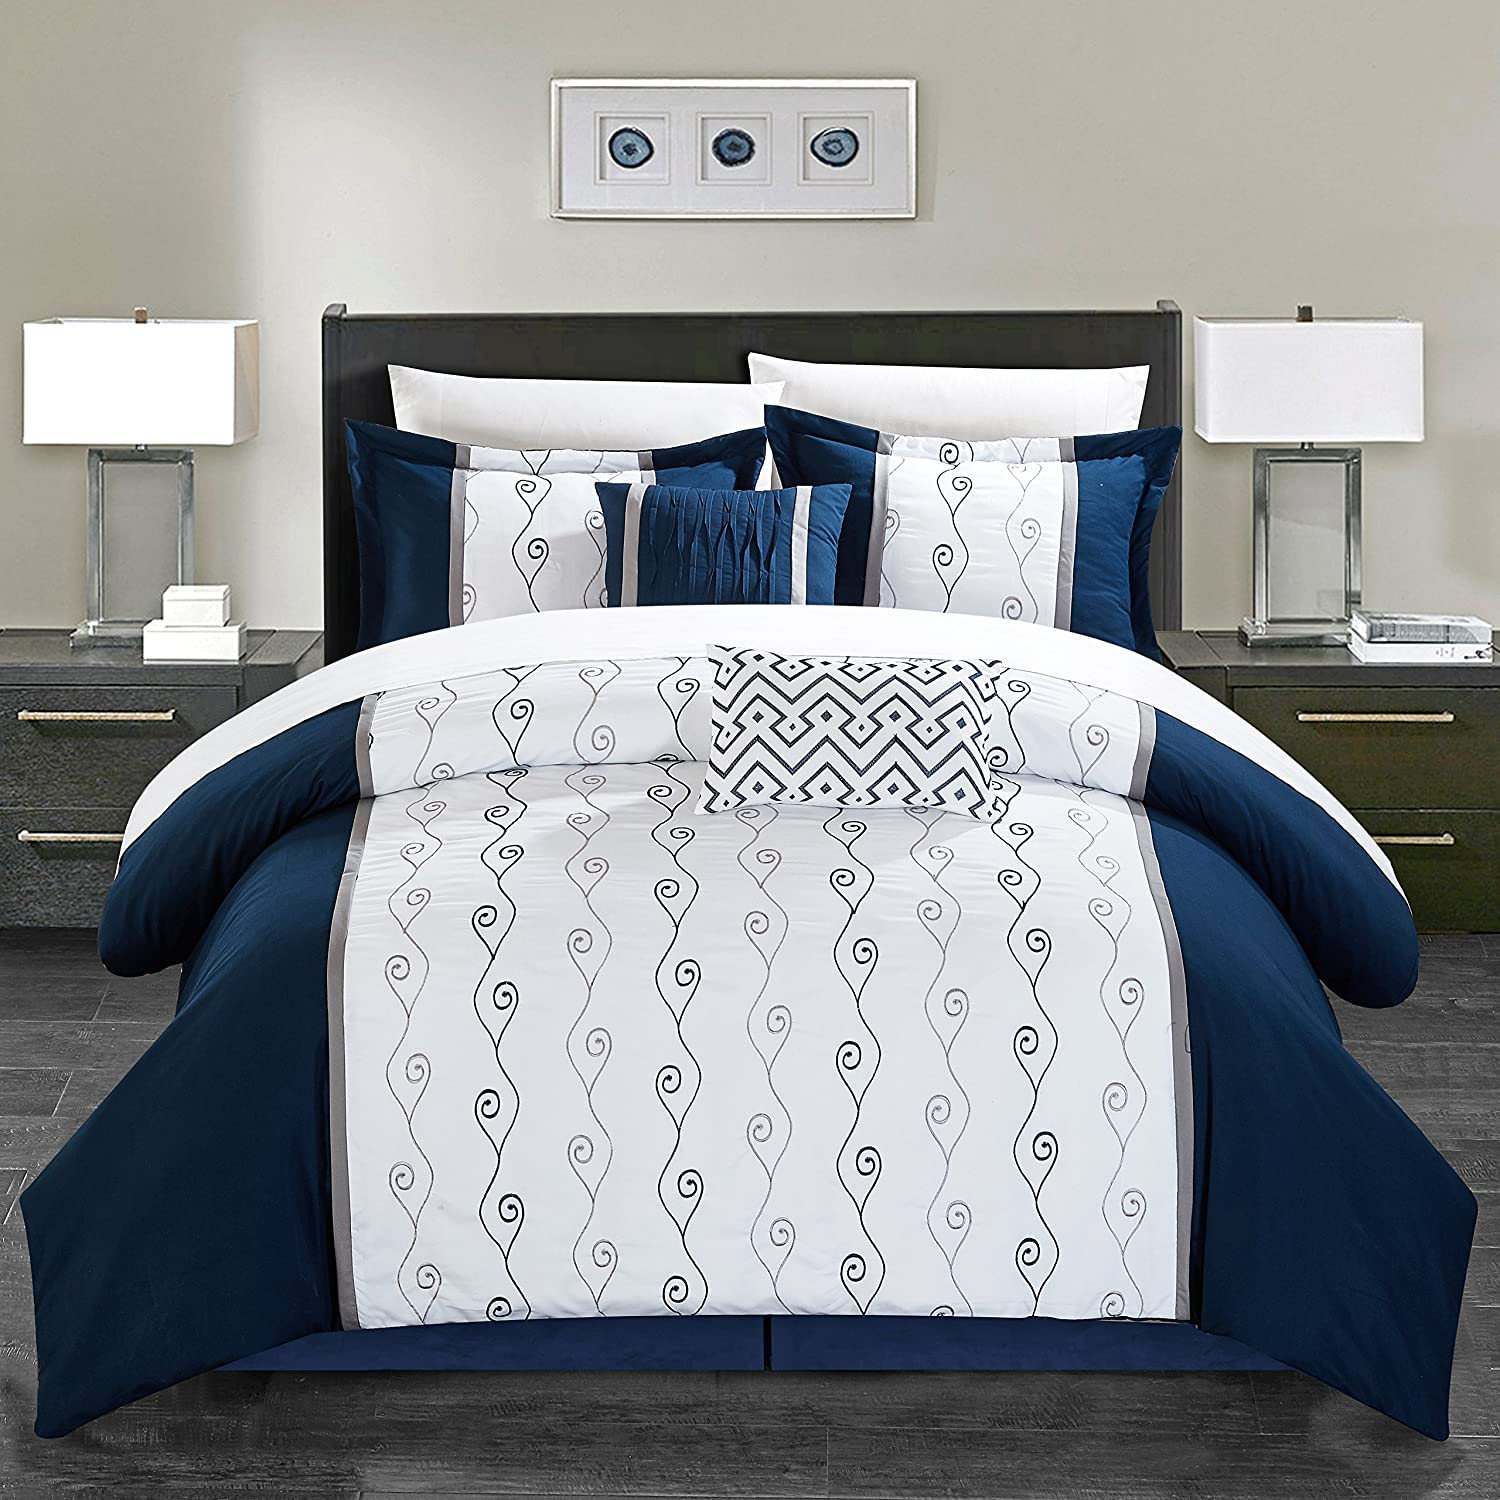 Chic Home Priston 6 Piece Comforter Set Color Block Embroidered Bedding - Bed Skirt Decorative Pillows Shams Included Queen Black CS8044-AN